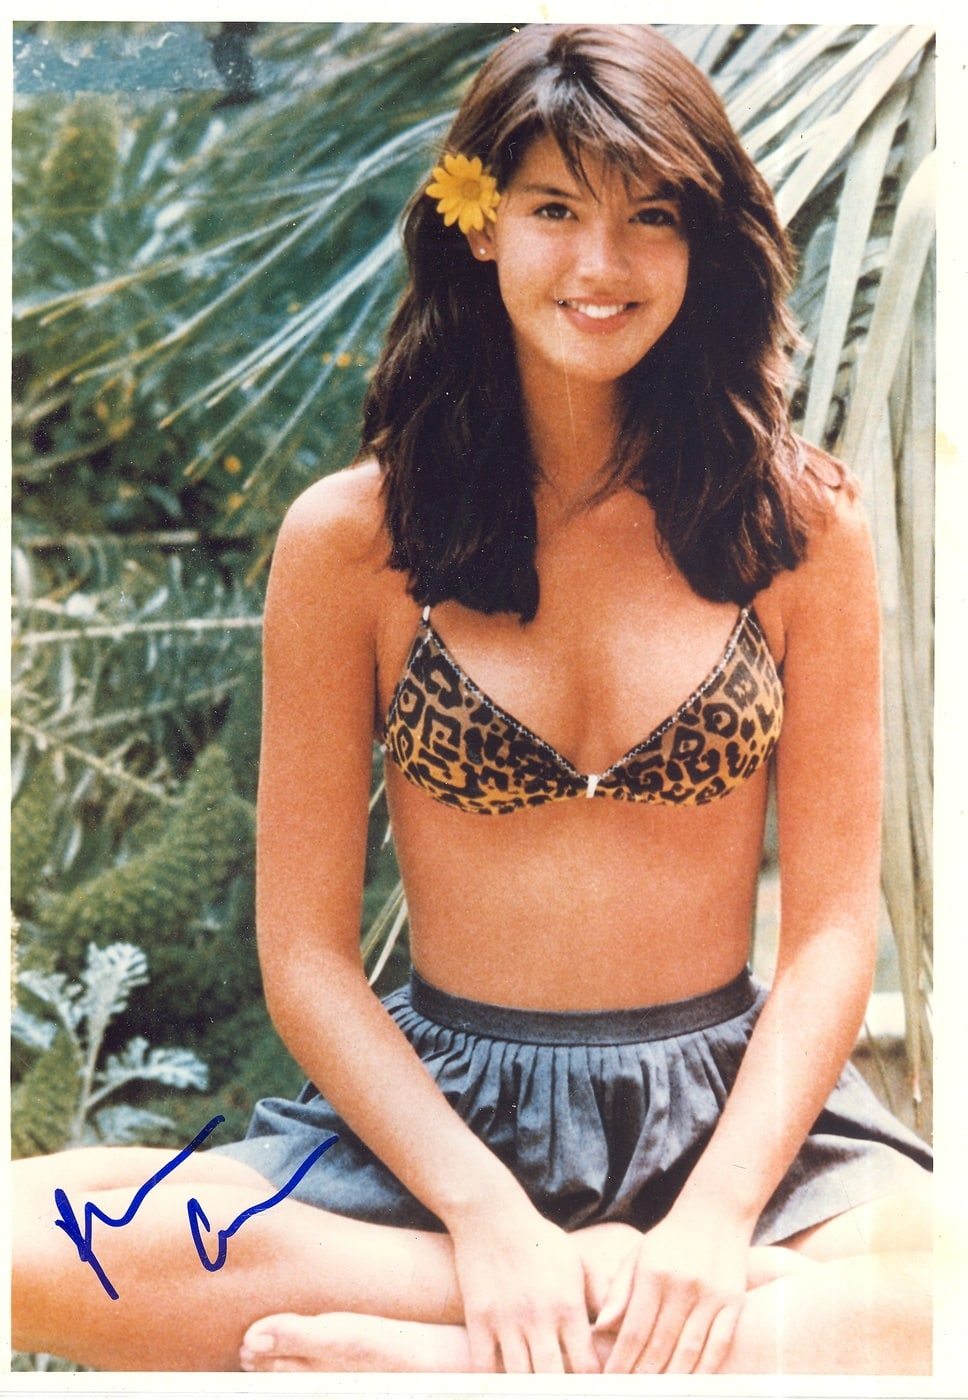 Nude Photos Of Phoebe Cates 12